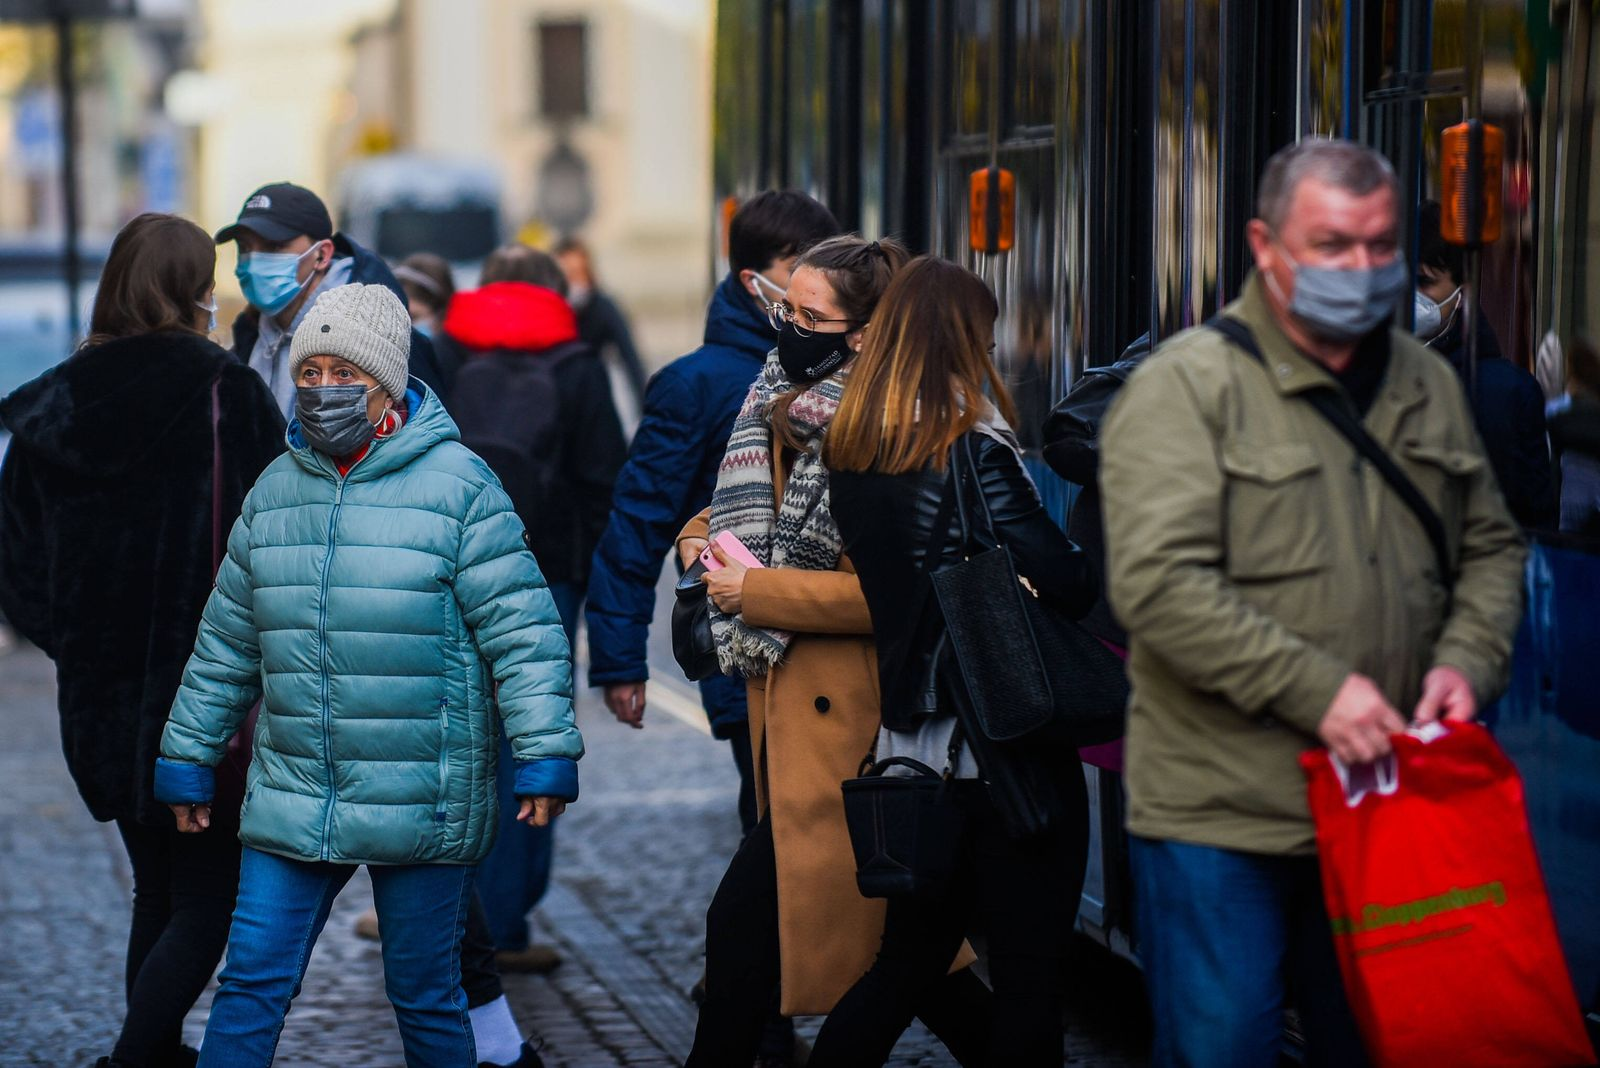 November 19, 2020, Krakow, Poland: People wearing protective face masks as a preventive measure against the spread of co